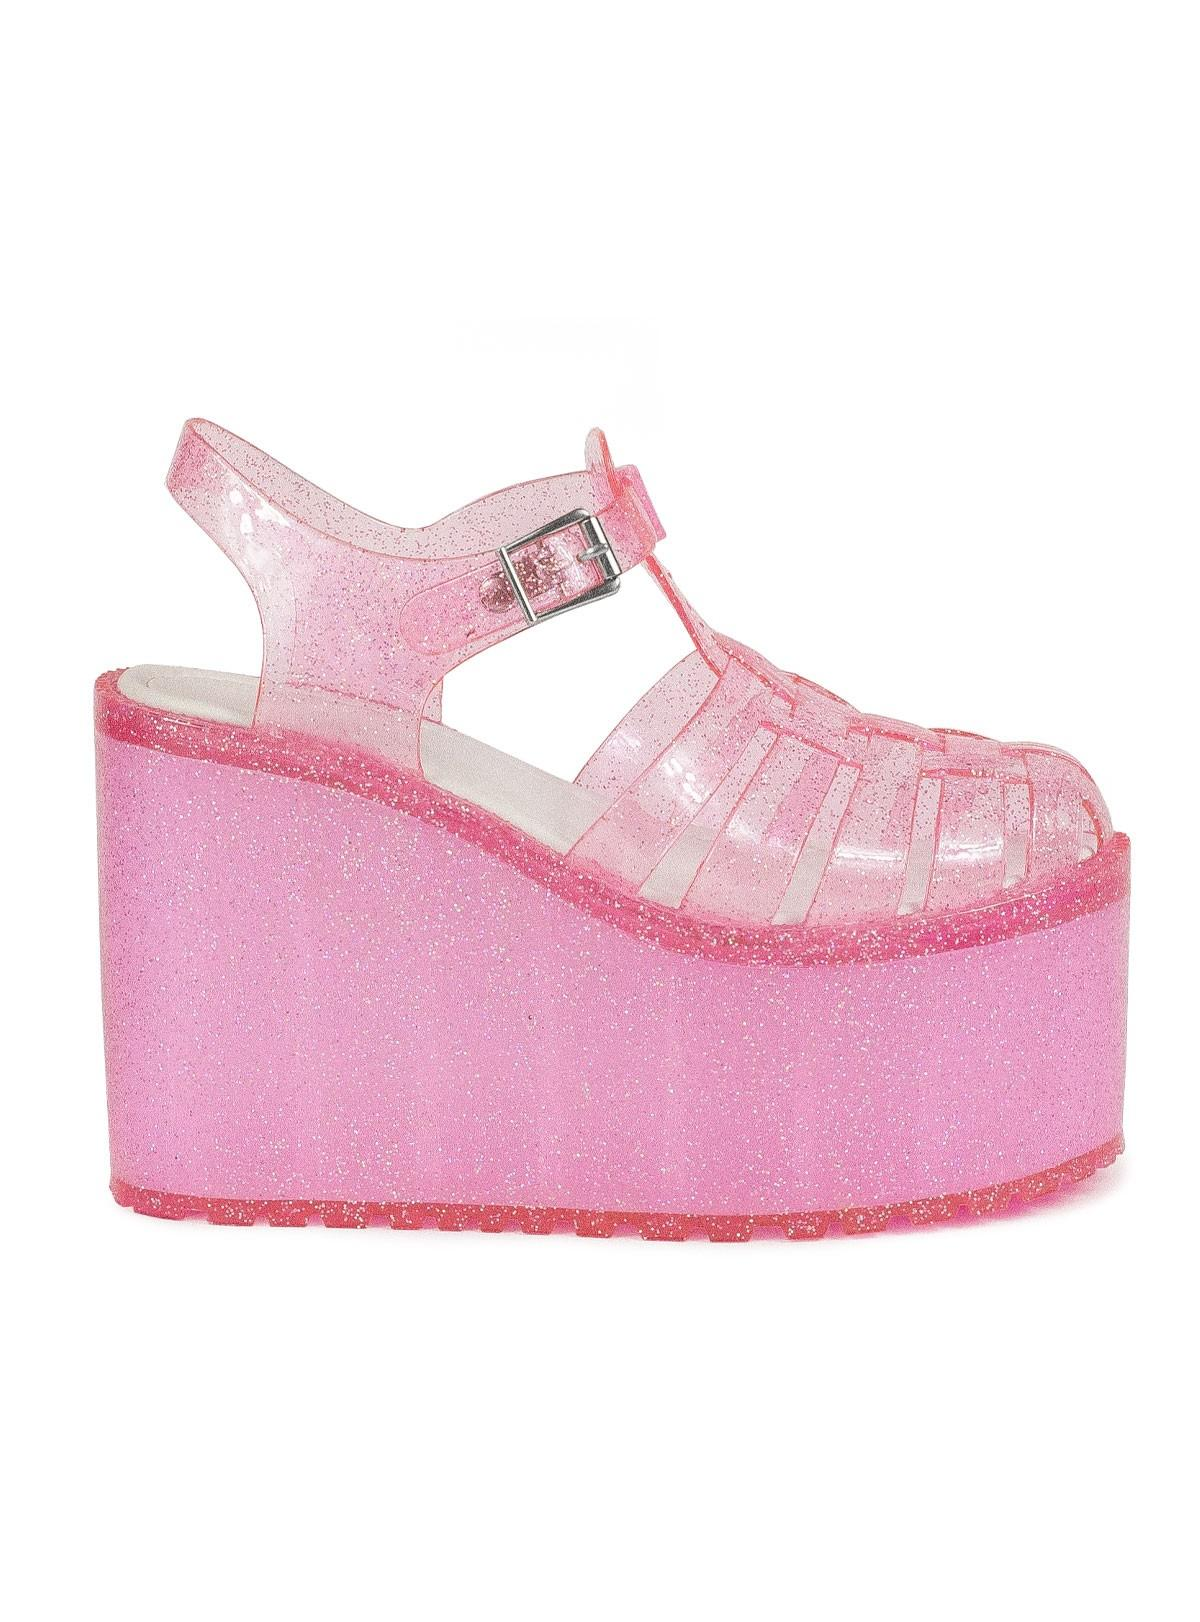 Unif Hella Jelly Platforms From Unif Footwear